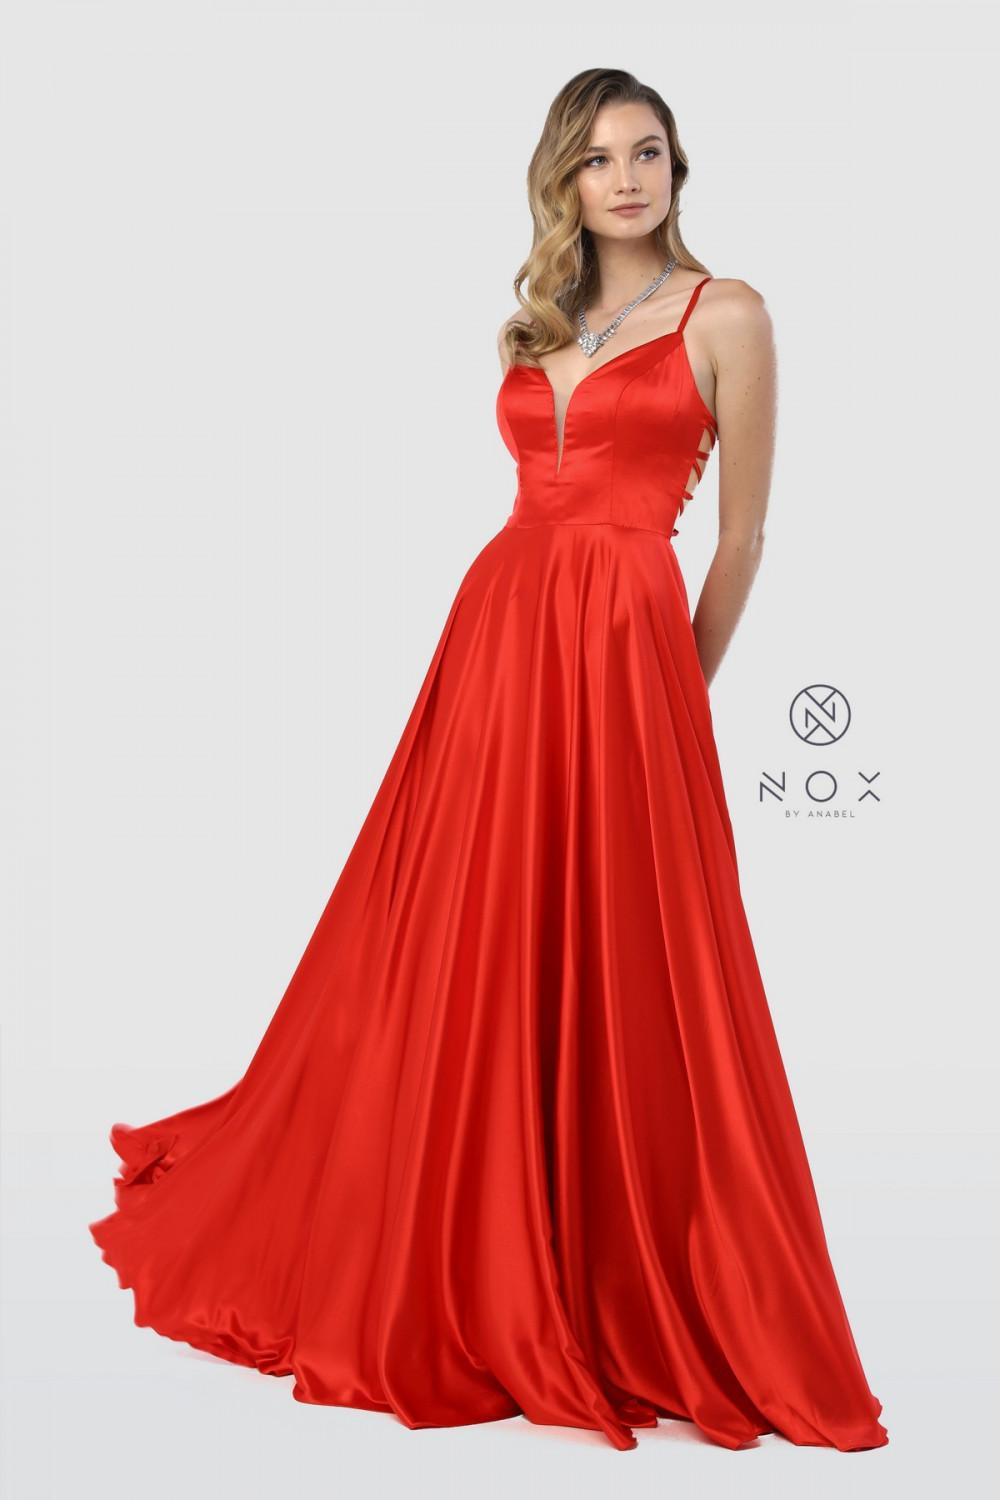 Nox N A180 - Satin A-Line Prom Gown with V-Neck Strappy Back & Side Pockets - Diggz Prom